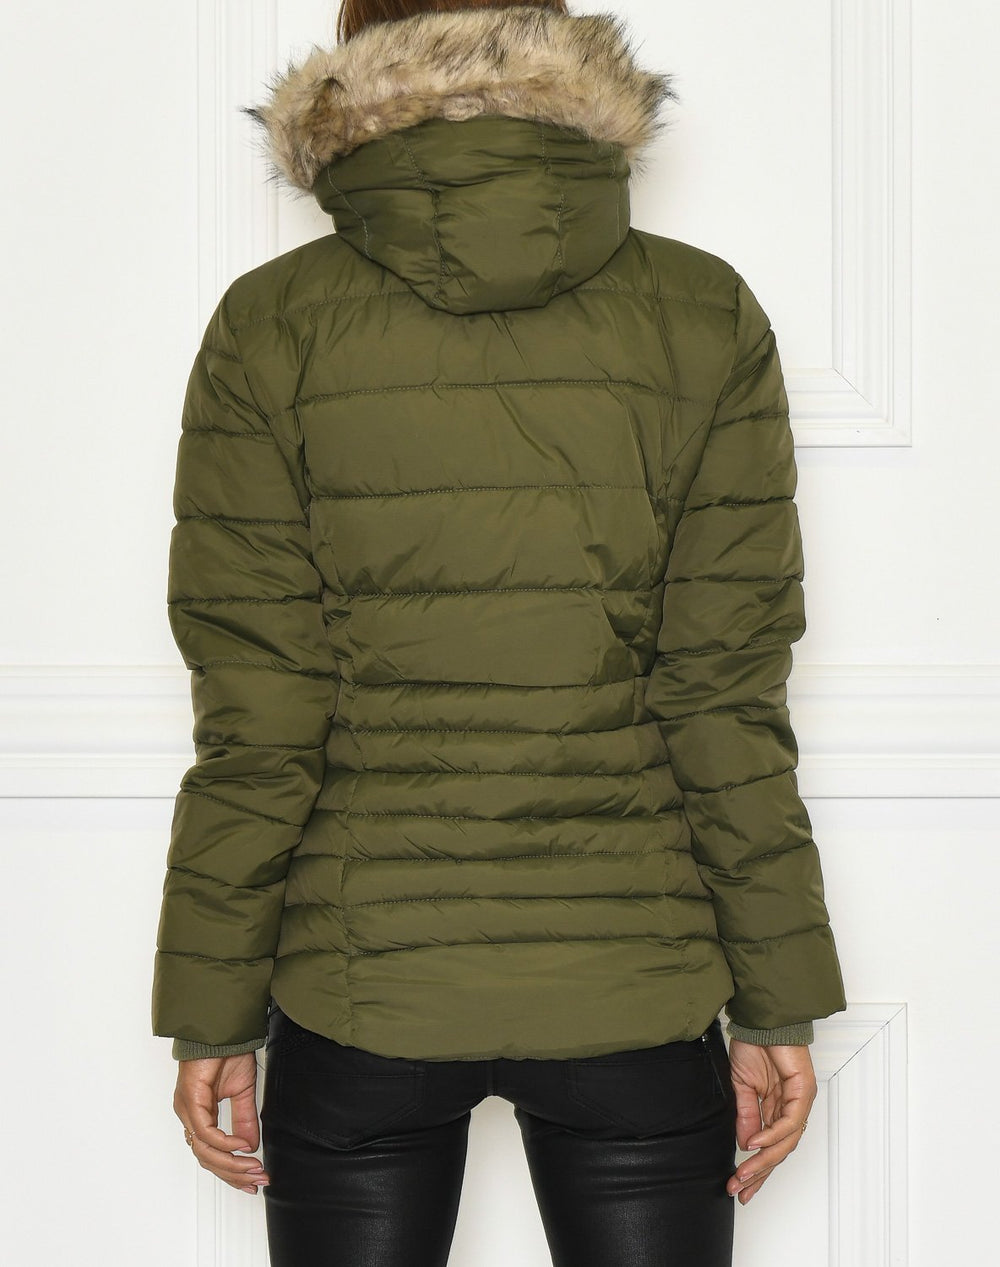 B.Young BYBomina jacket 2 olive night - Online-Mode